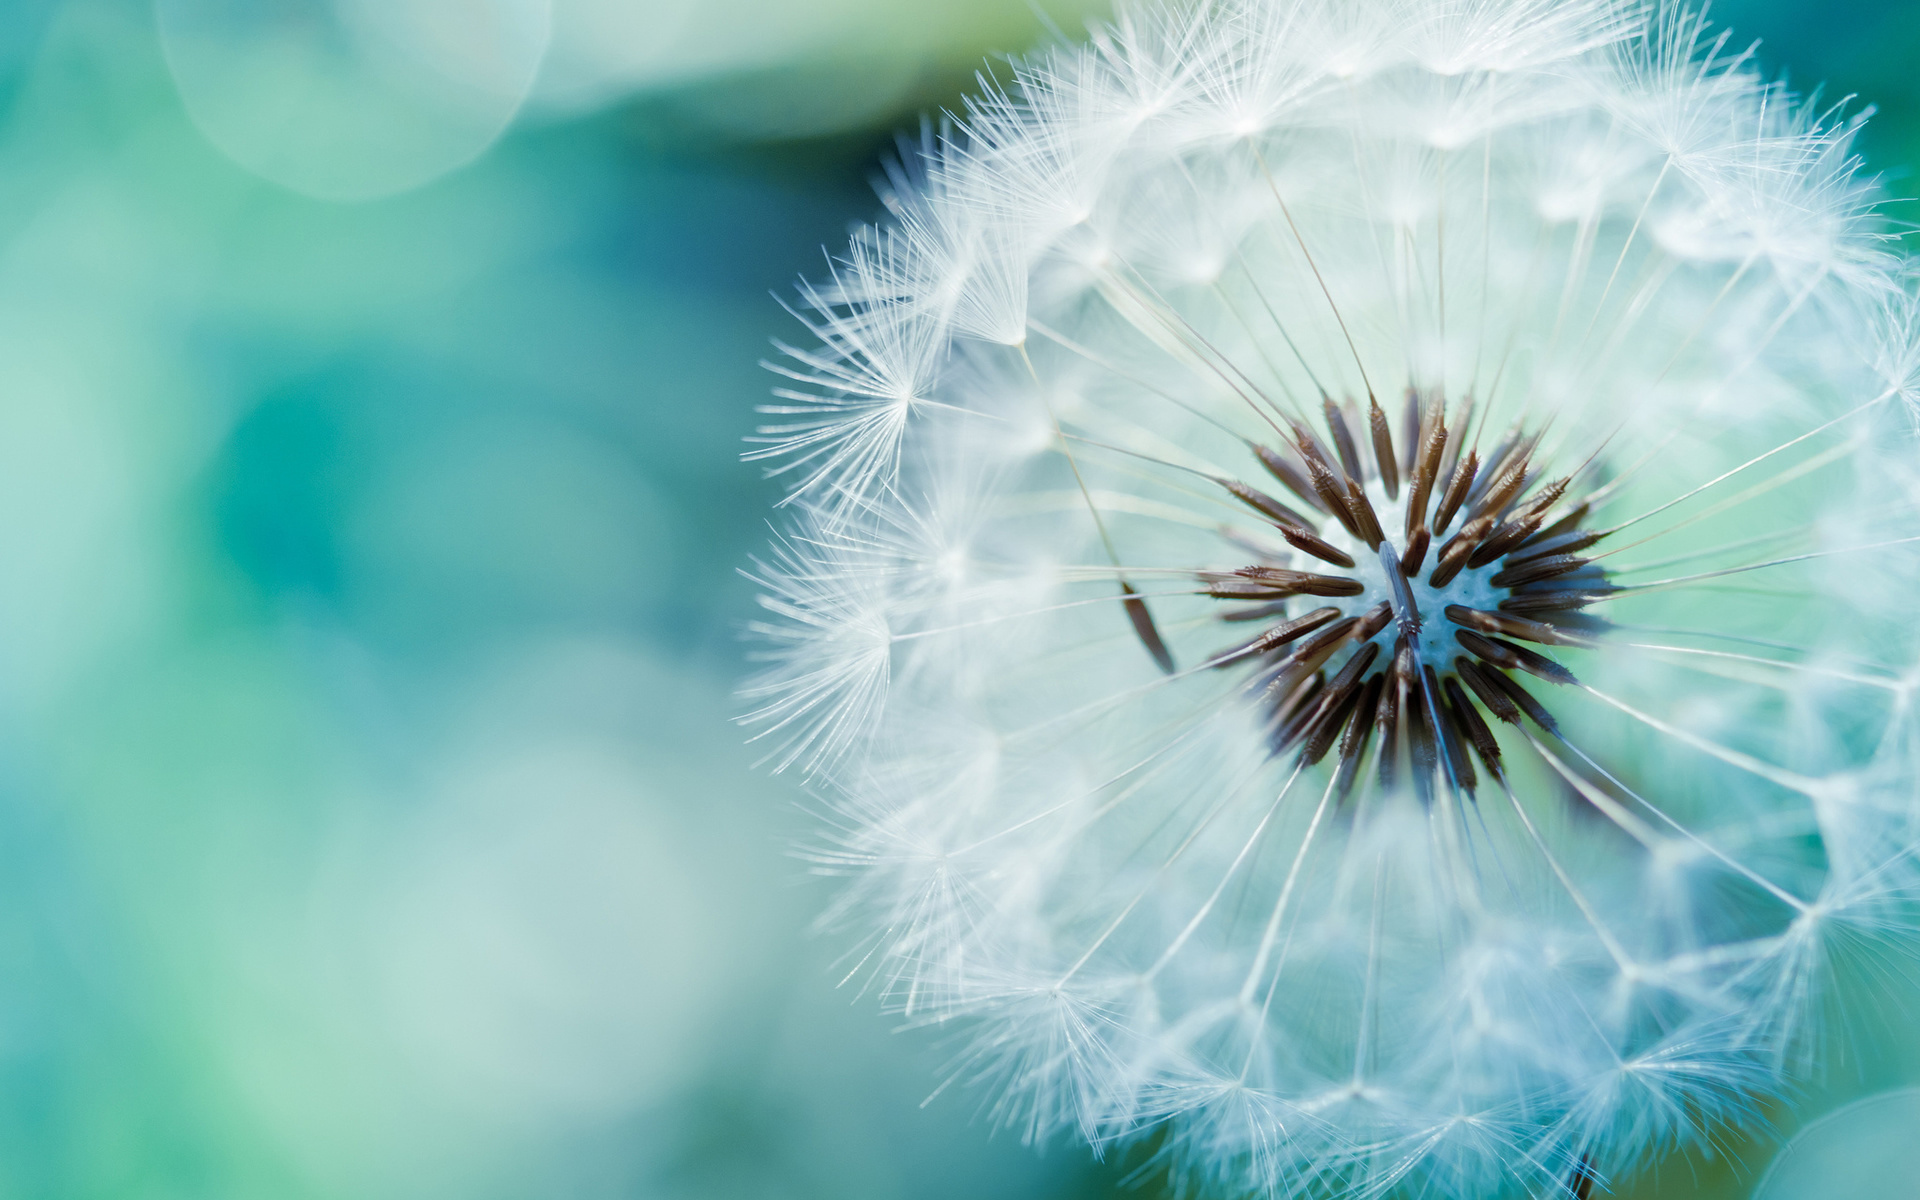 Dandelion Nature Flower Wallpaper 1920x1200